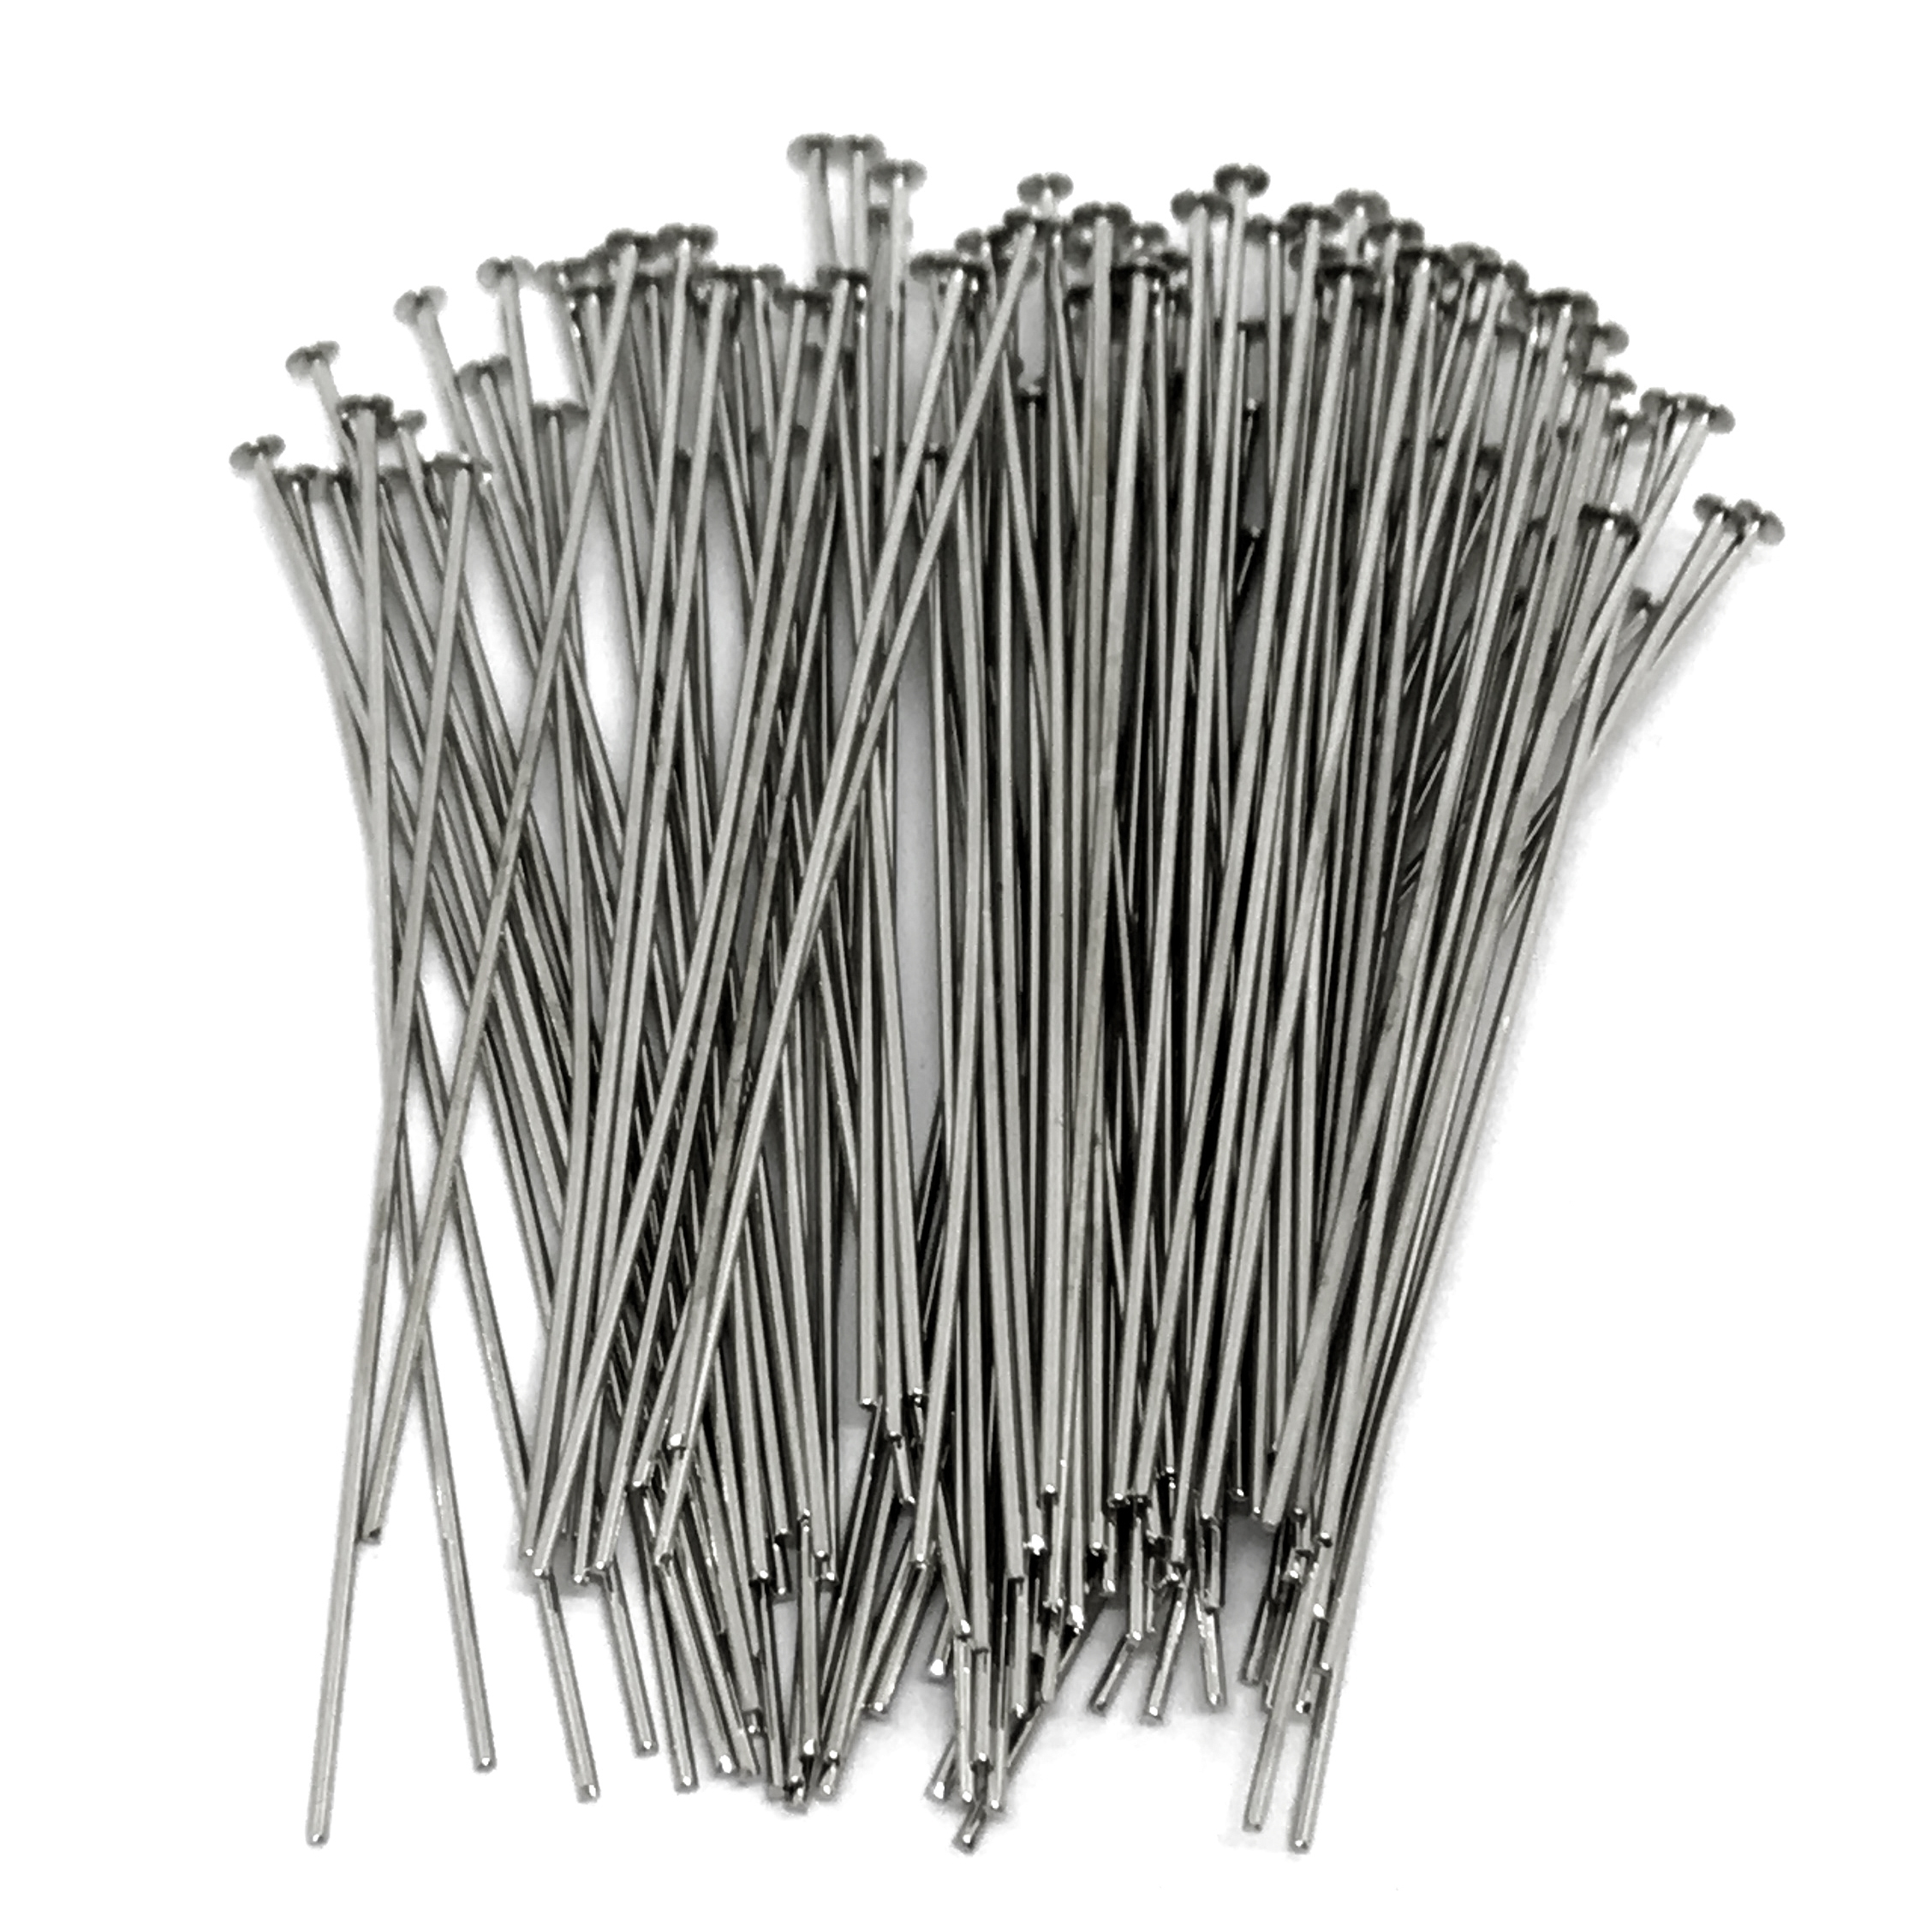 headpins, 2 inch headpins, silver plate, 04059, jewelry making supplies, vintage jewelry supplies, earring supplies, antique silver, US made, Bsue Boutiques, nickel free jewelry supplies